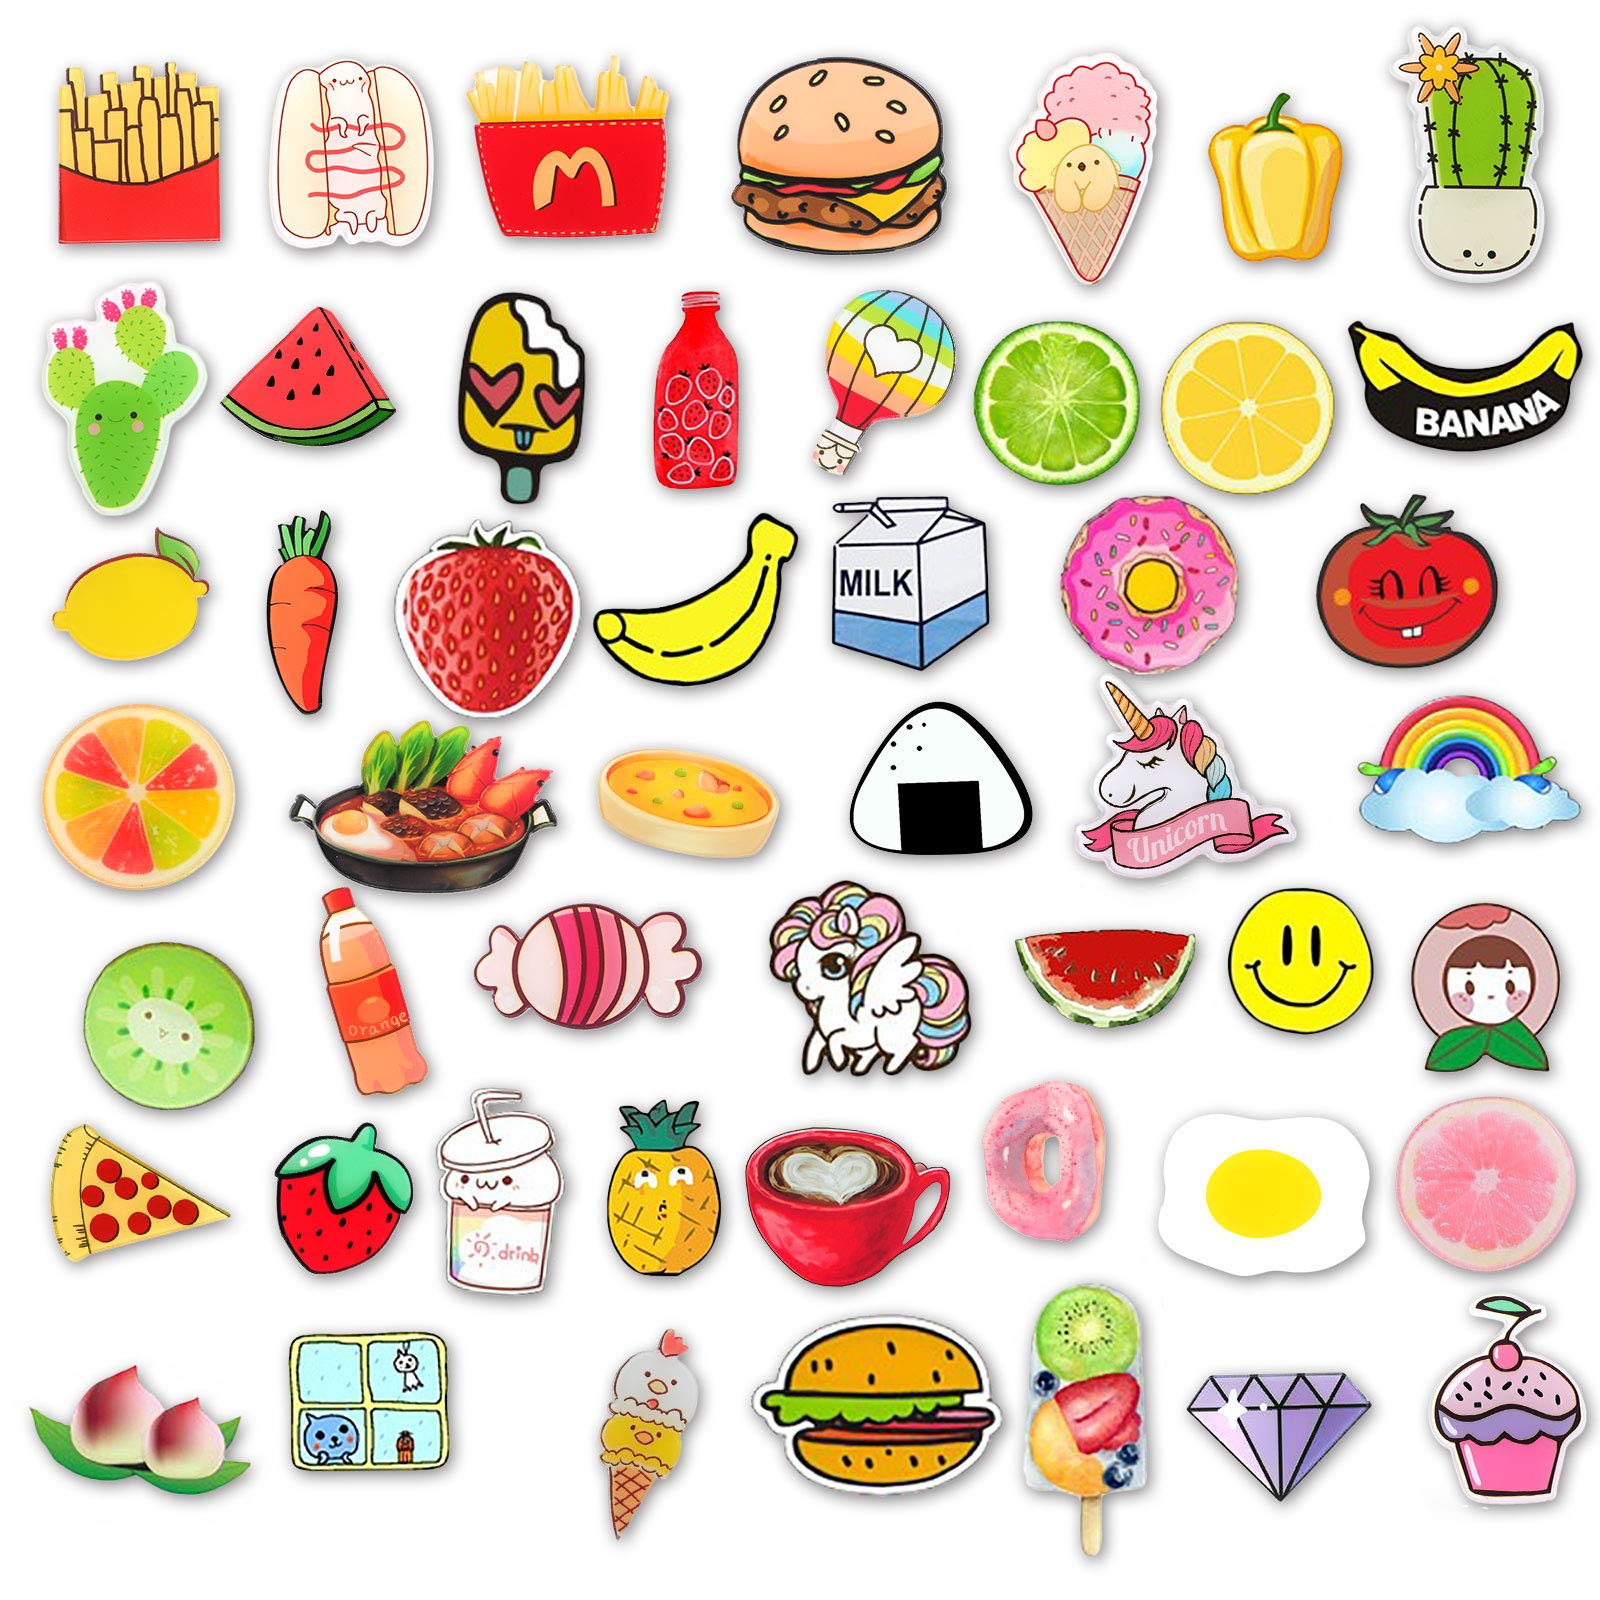 MJartoria 50 PCS Cute Cartoon Acrylic Lapel Pins for Backpack Aesthetic Fruit Brooch Badge Pin Set for Clothing Bags Clothing Bags Jackets